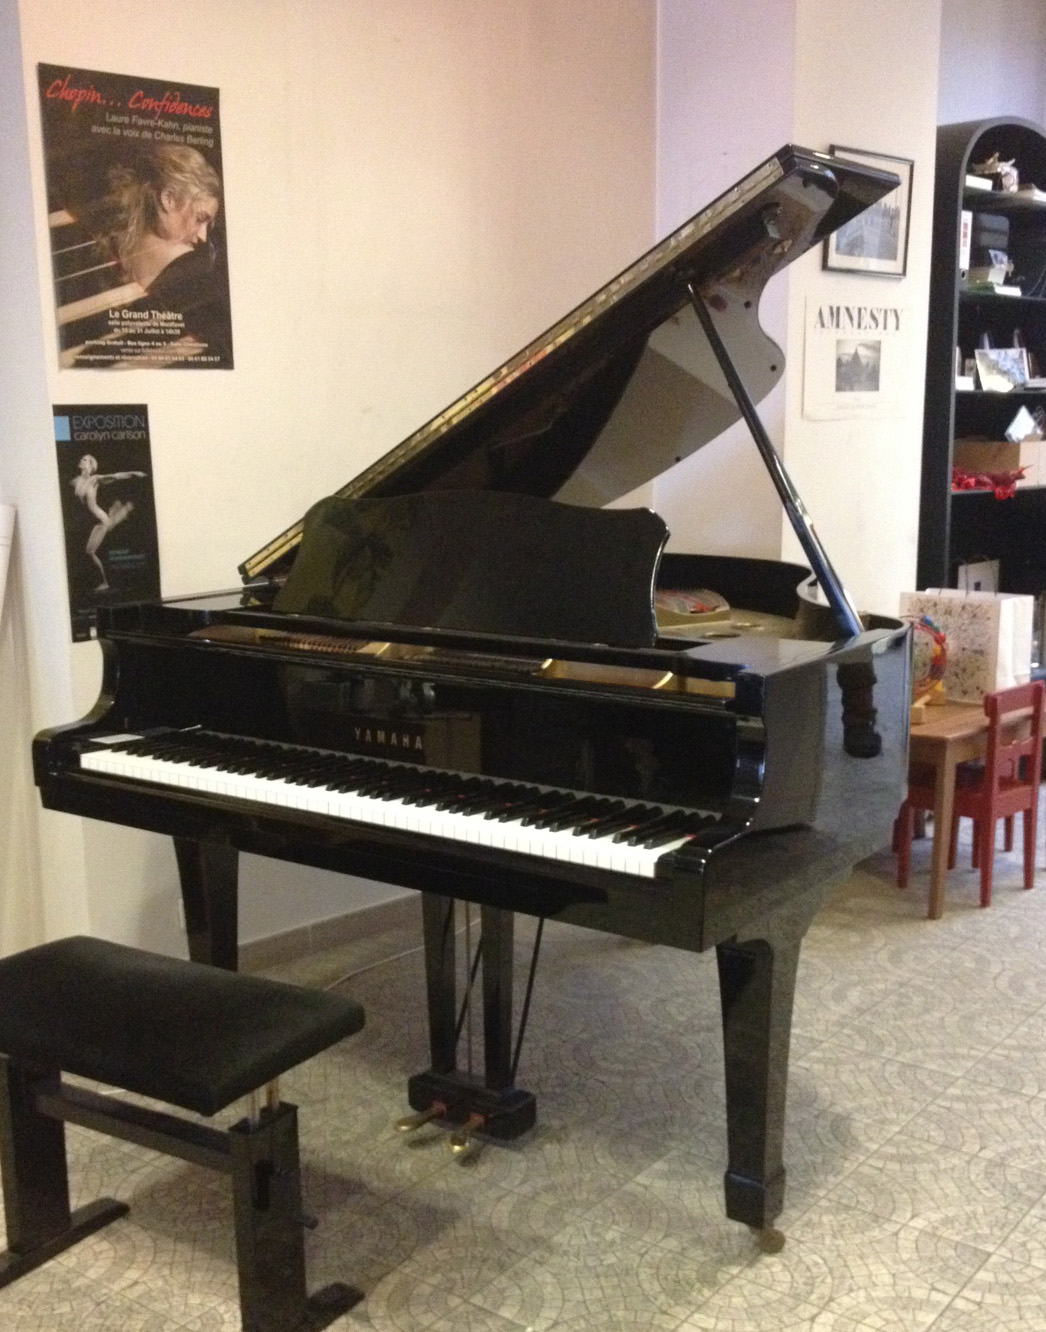 Piano quart de queue d'occasion Yamaha G2 Piano Pulsion Avignon